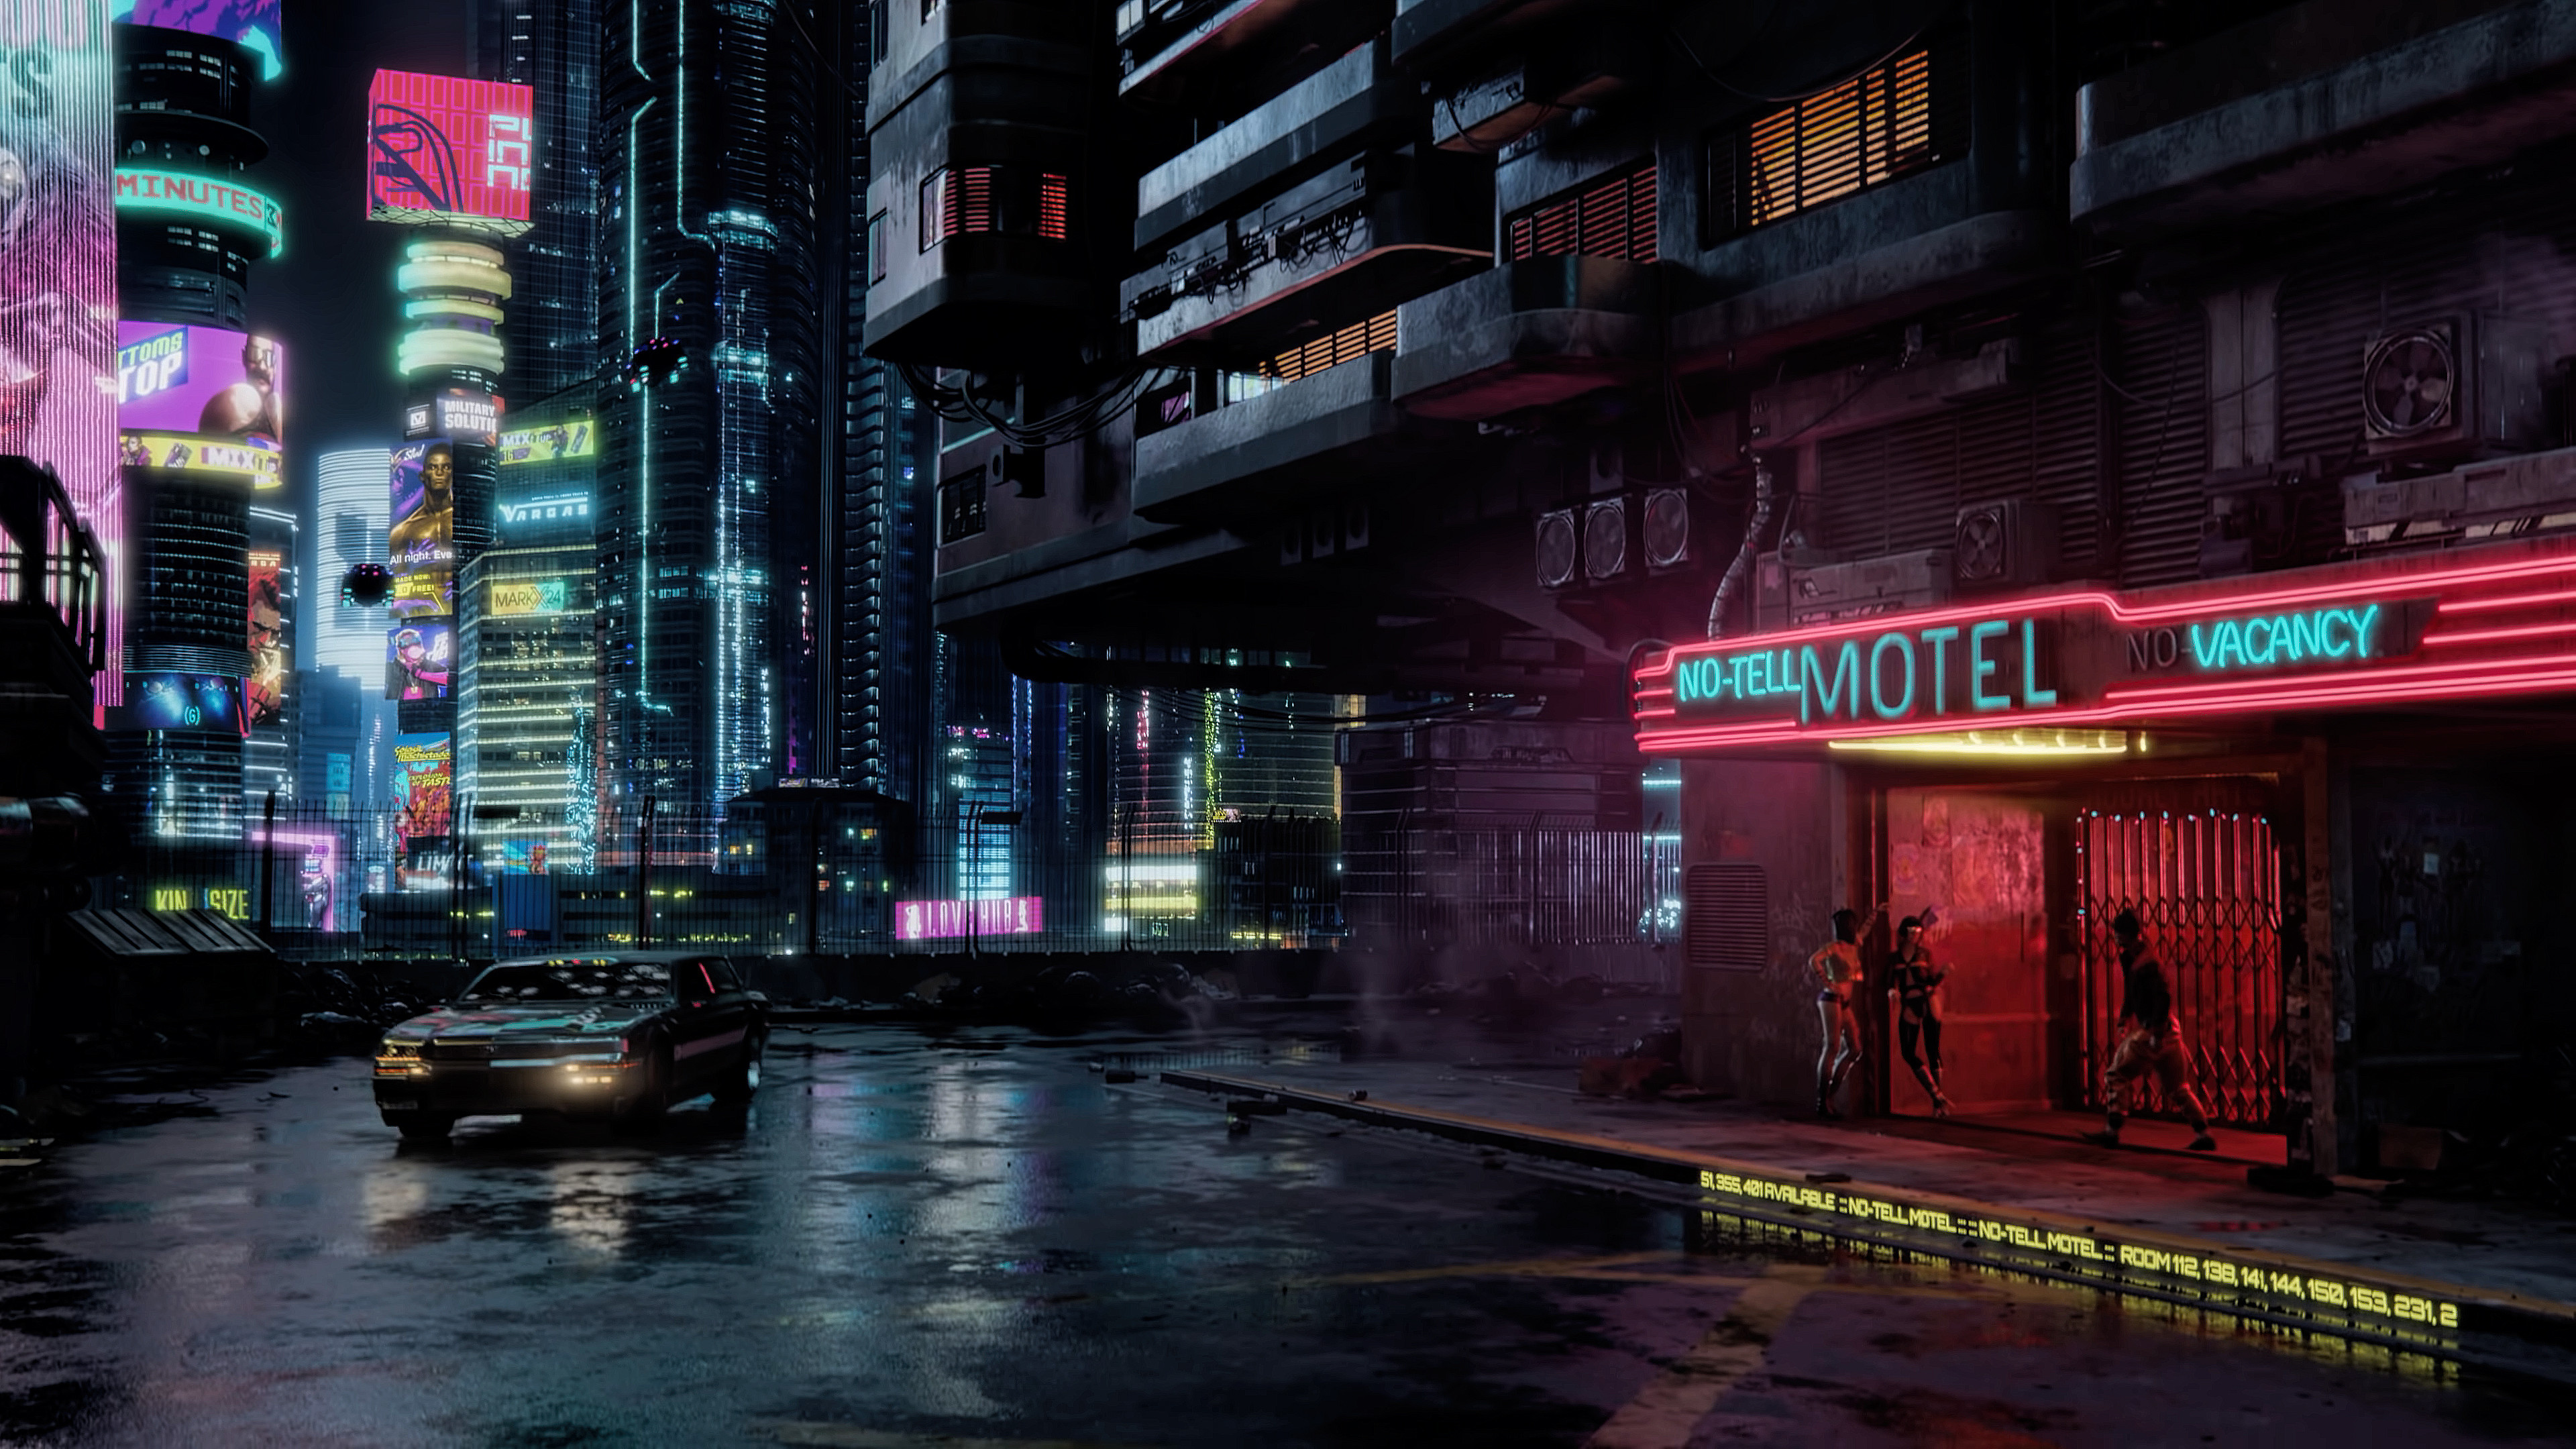 Cyberpunk 4K wallpapers for your desktop or mobile screen ...